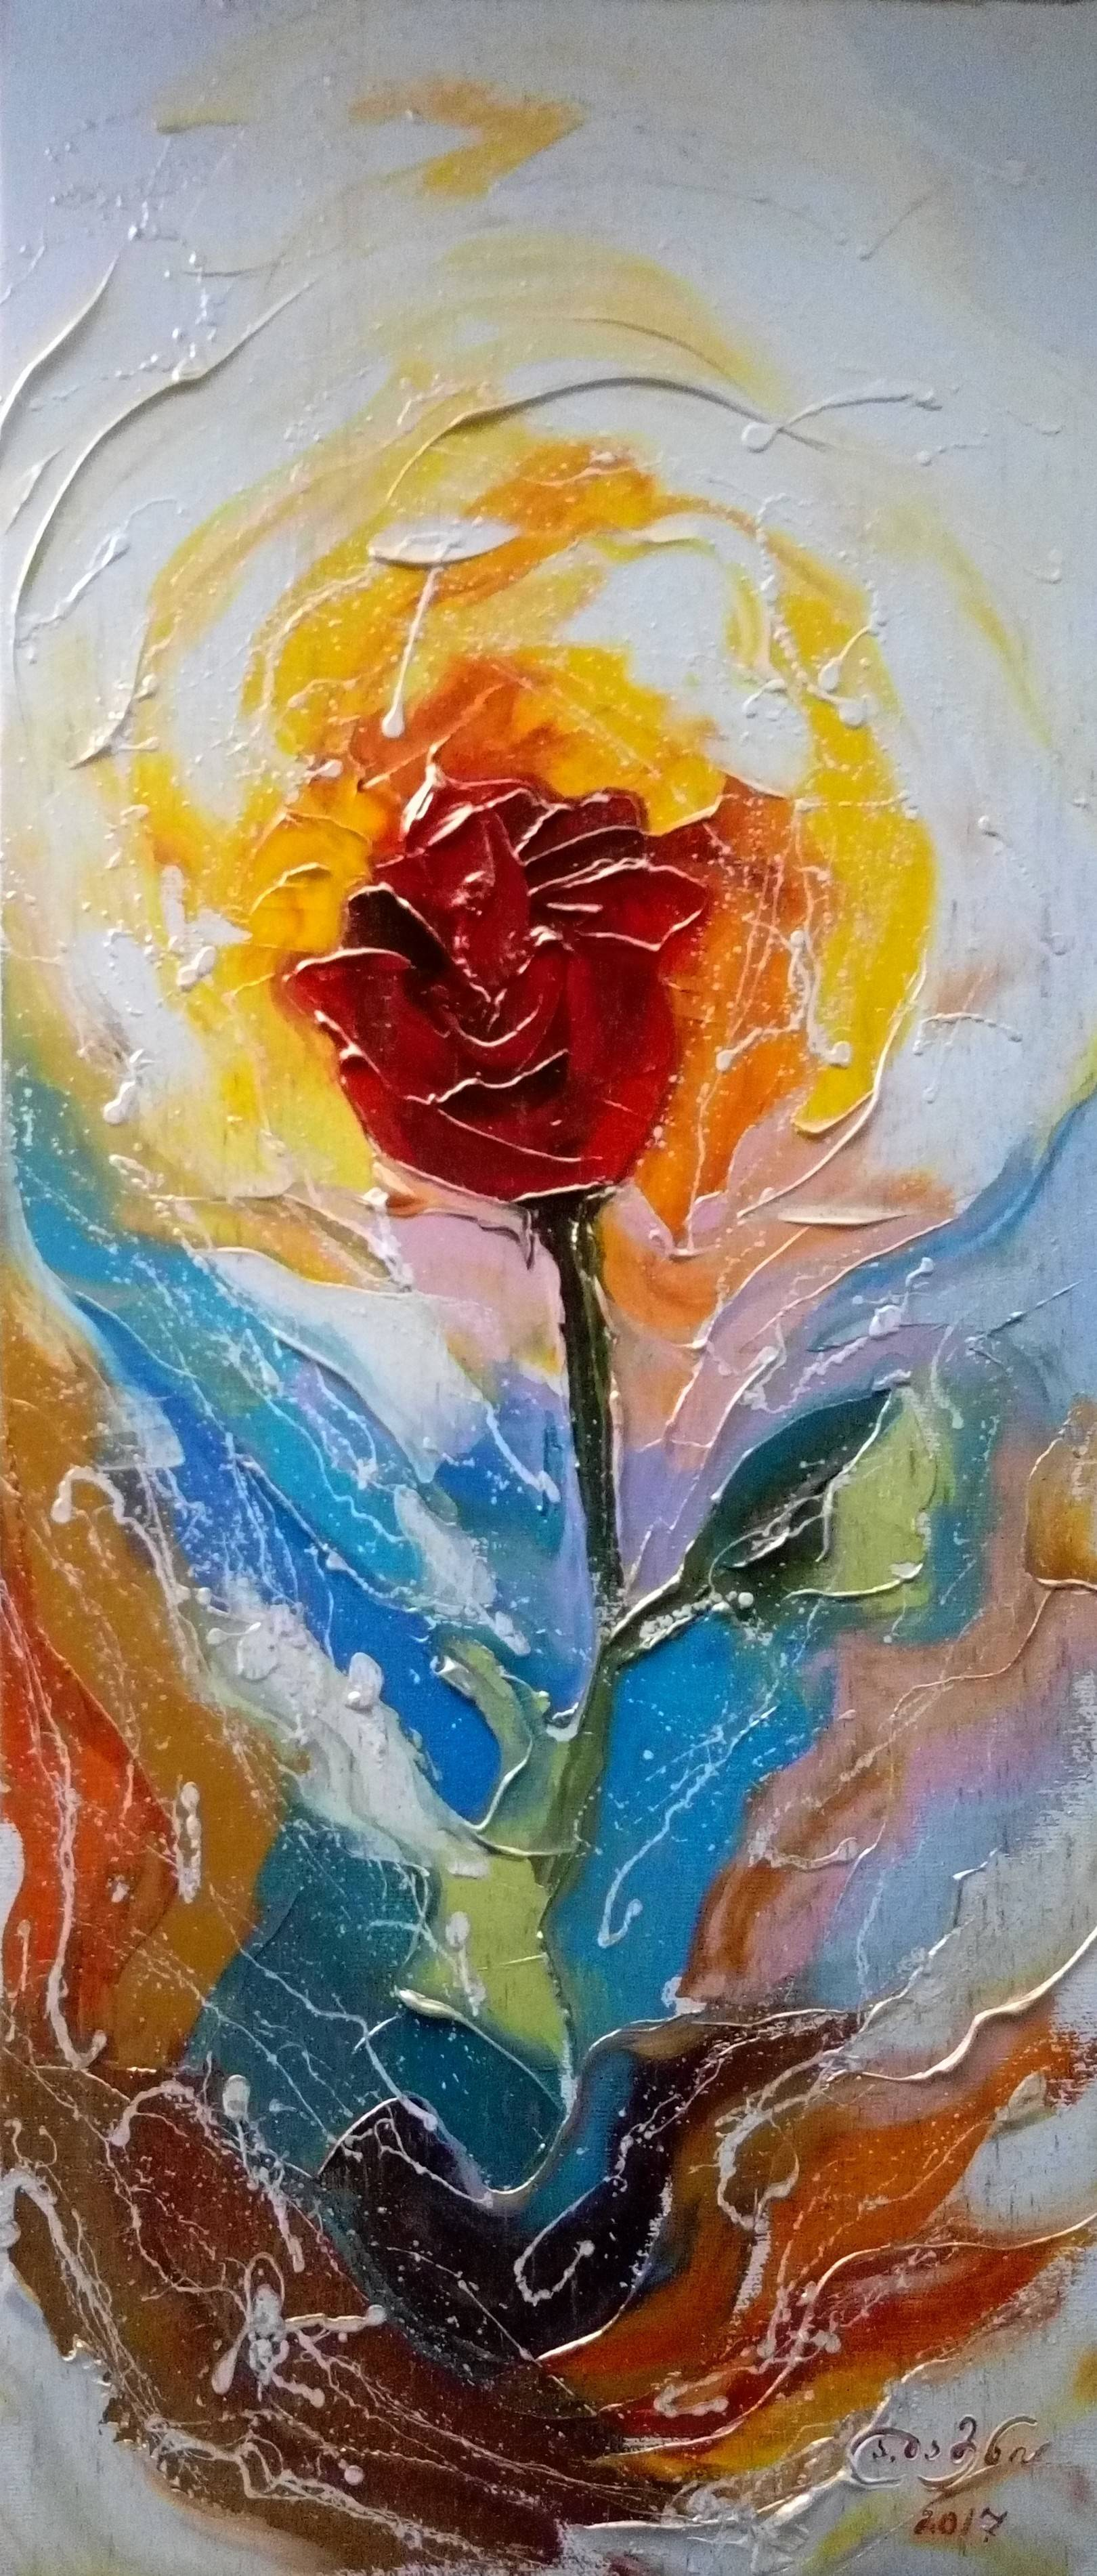 «Роза»        холст, масло «Rose»        oil on canvas  70x30, 2017